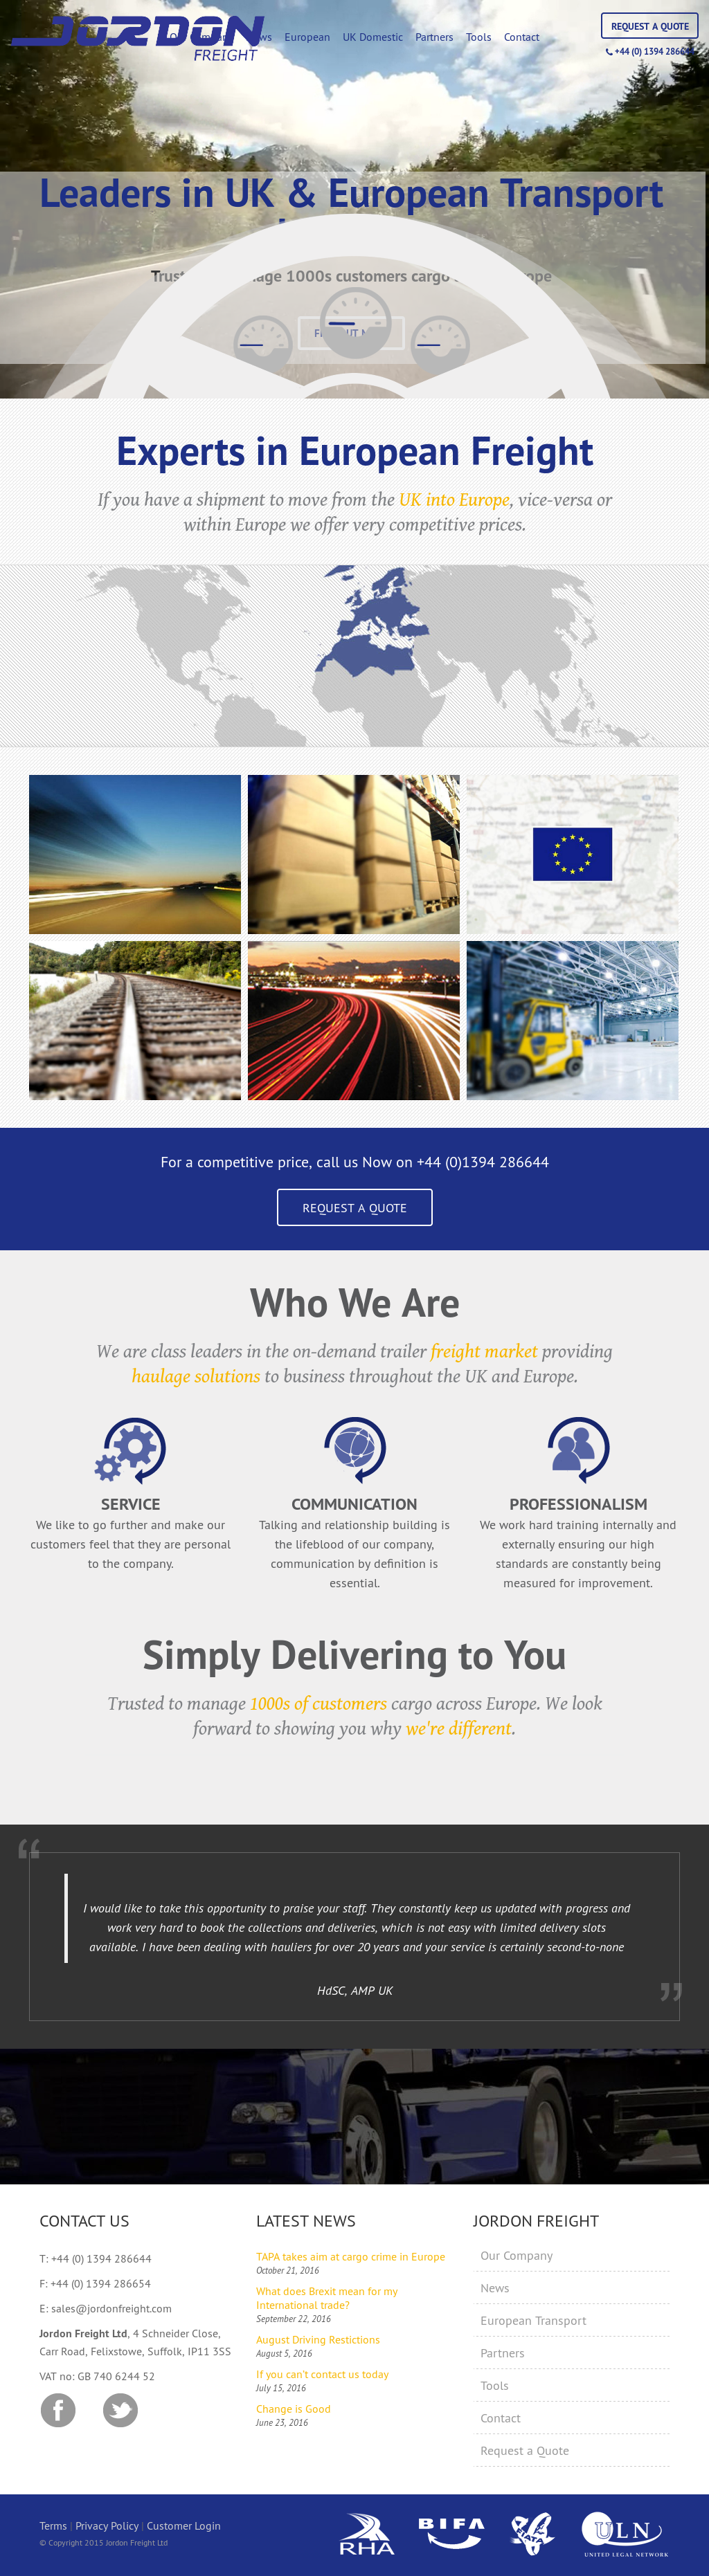 Jordon Freight Competitors, Revenue and Employees - Owler